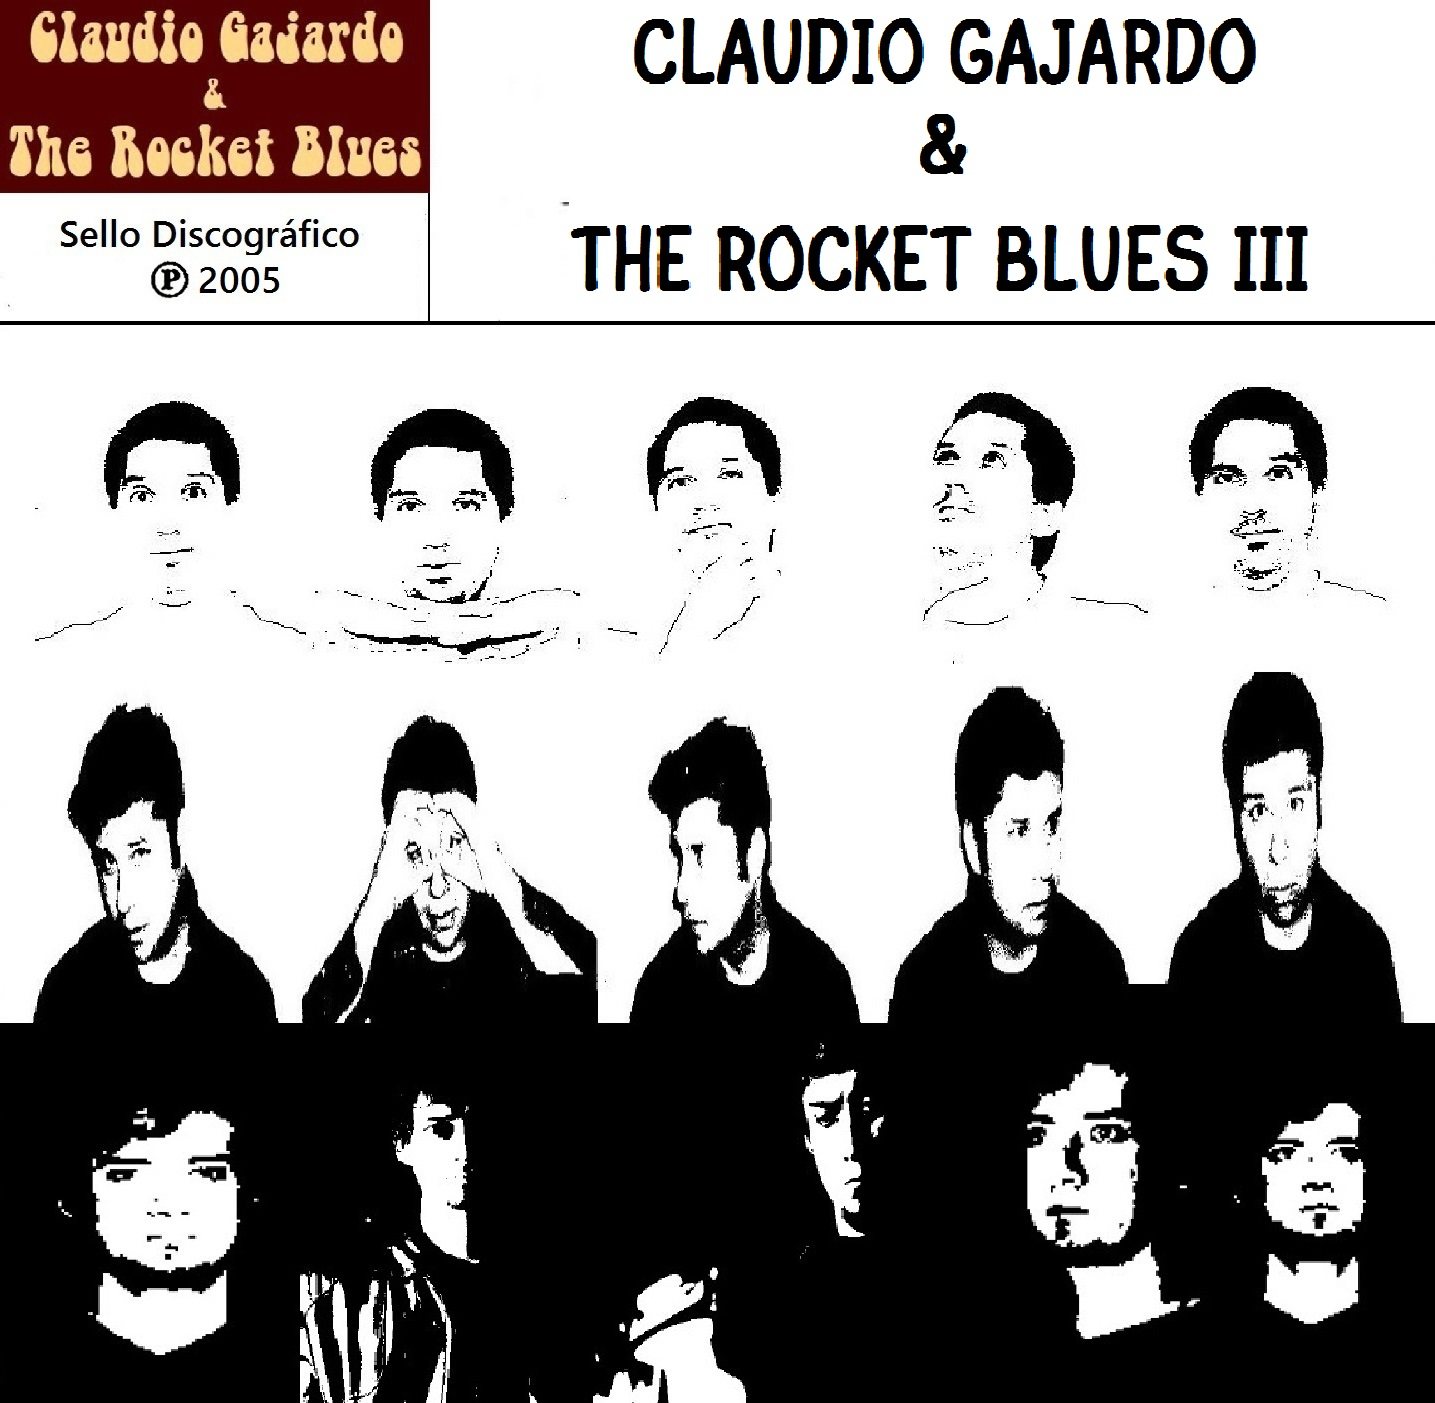 Carátula_de_Claudio_Gajardo_&_The_Rocket_Blues_III_(2005)1